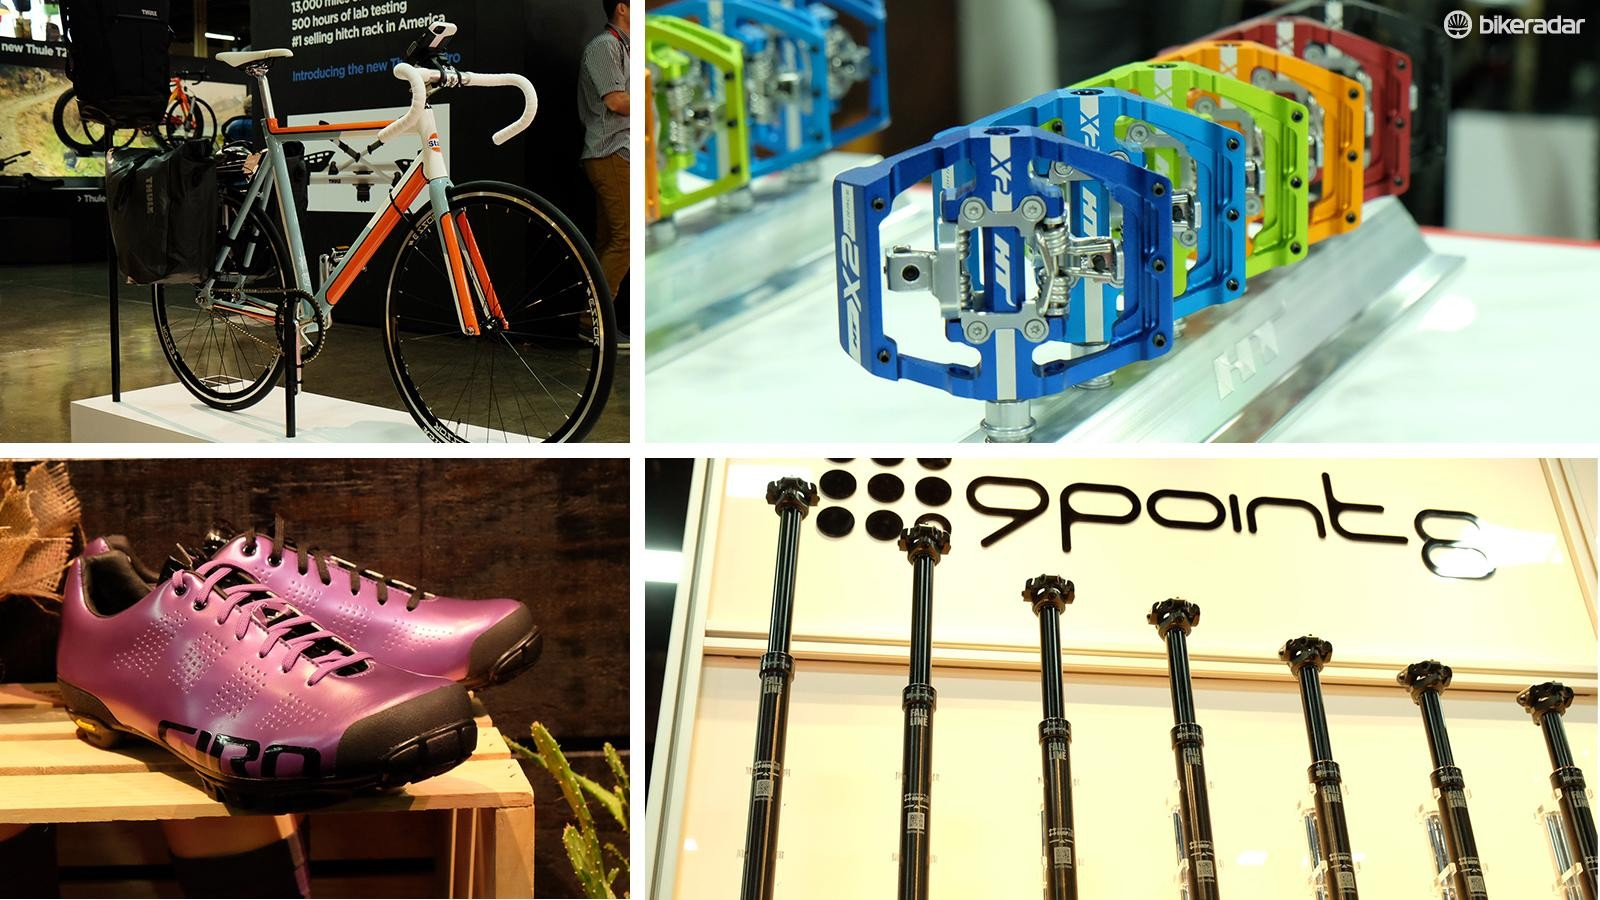 Here's a look at some of the new and interesting gear on display inside Interbike's halls